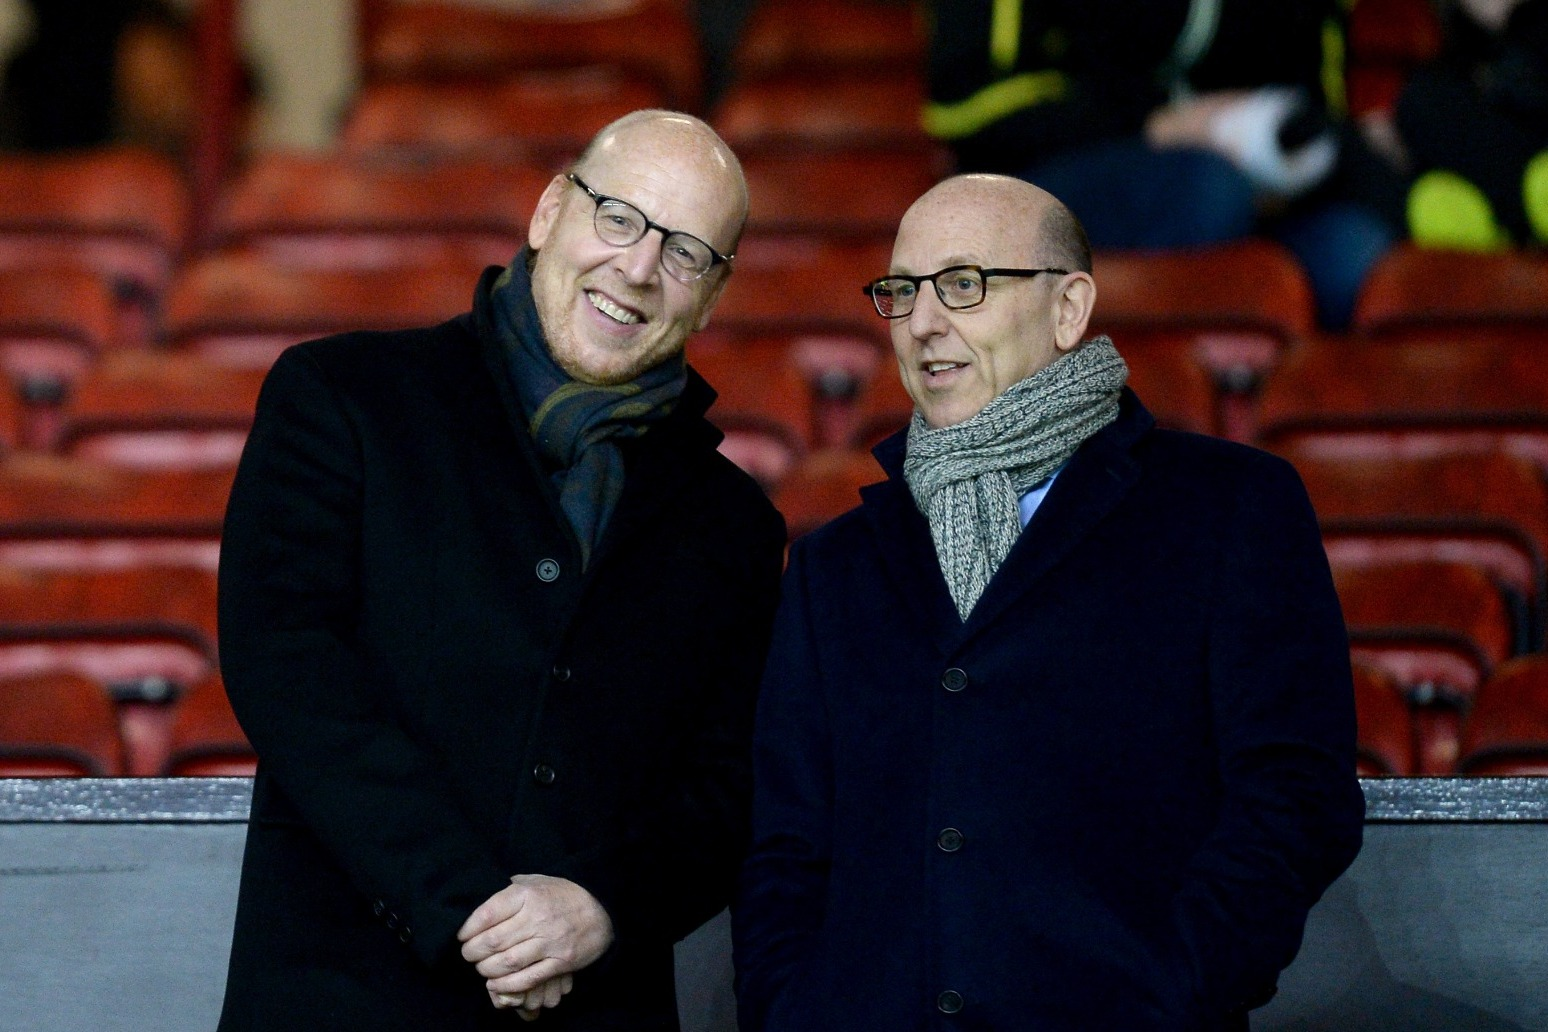 Manchester United supporters ask Glazer family to loosen their grip on club